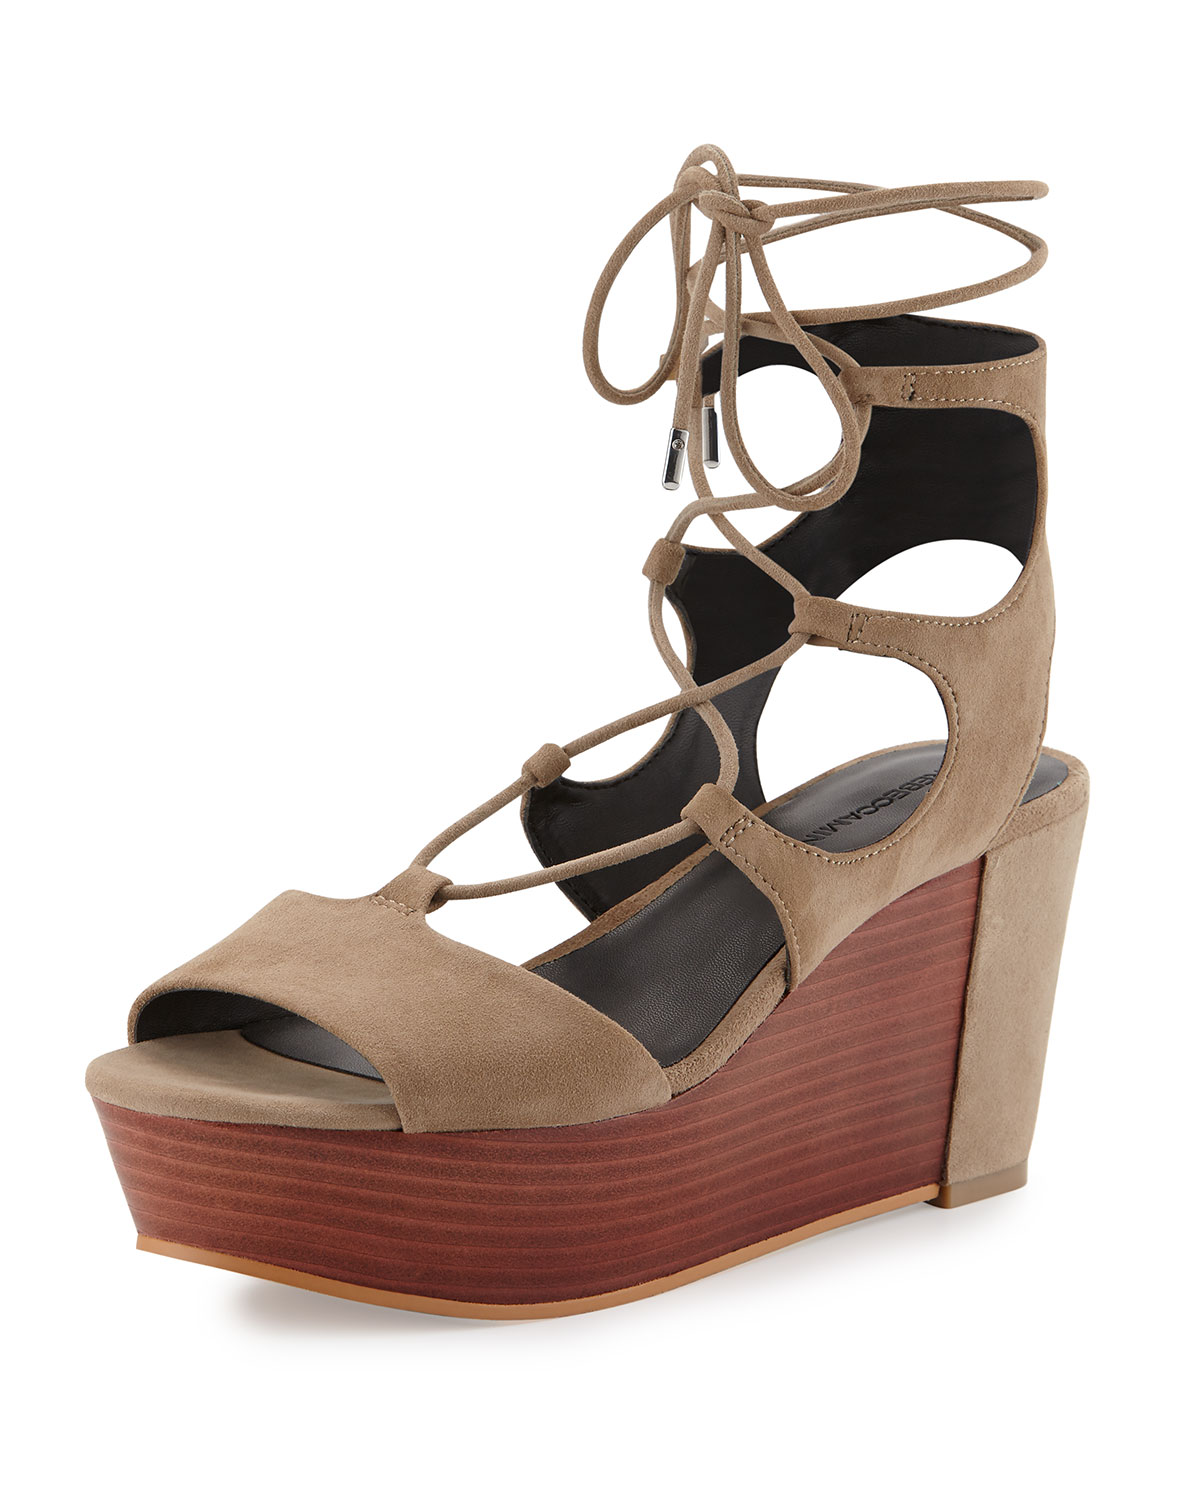 5046c8f7db95 Rebecca Minkoff Cady Lace-Up Platform Wedge Sandal